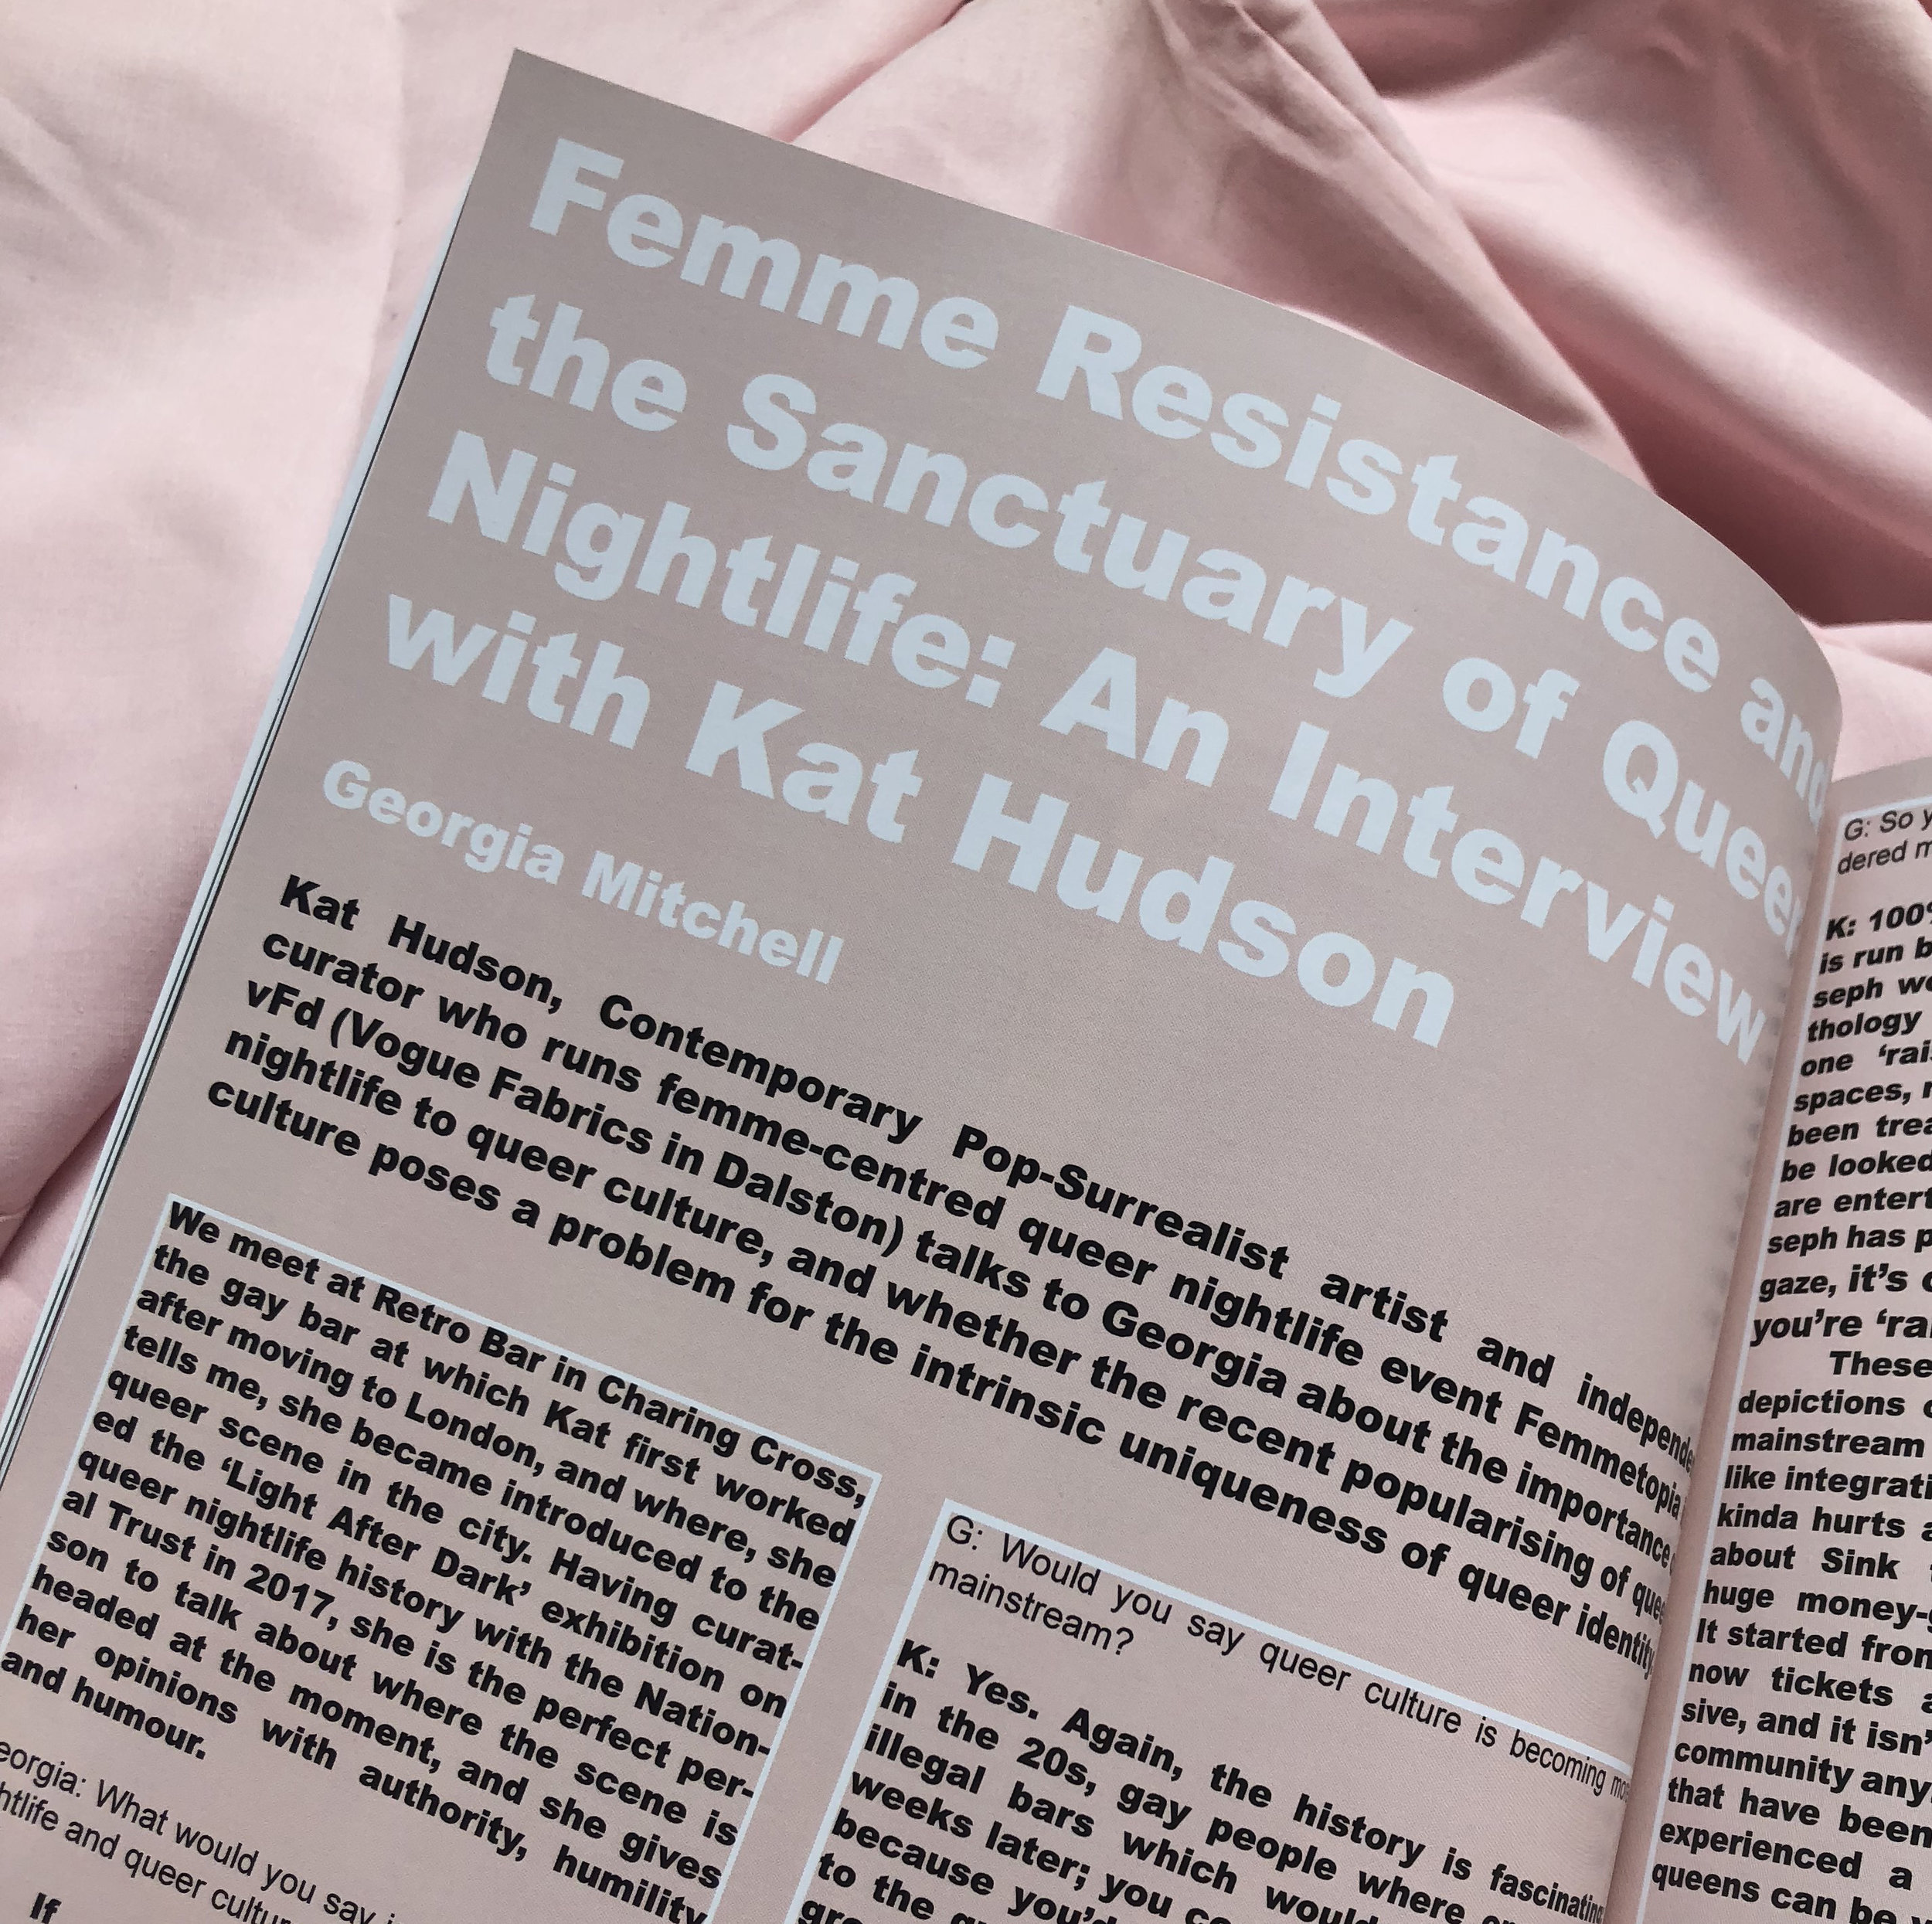 Kat talks to Georgia Mitchell from Fem Zine about queer club culture and 'femme resistance'. Get your copy of Fem II 'Night Life' here:  femzinelondon.com   The zine also features Travis Alabanza, Liv Wynter and many more!  'There are a lot of LGBTQ people who want to integrate with heteronormative society, and a lot of us who really, really don't. There is a difference between acceptance and integration. There are people who don't fit into heteronormative ideas and don't want to